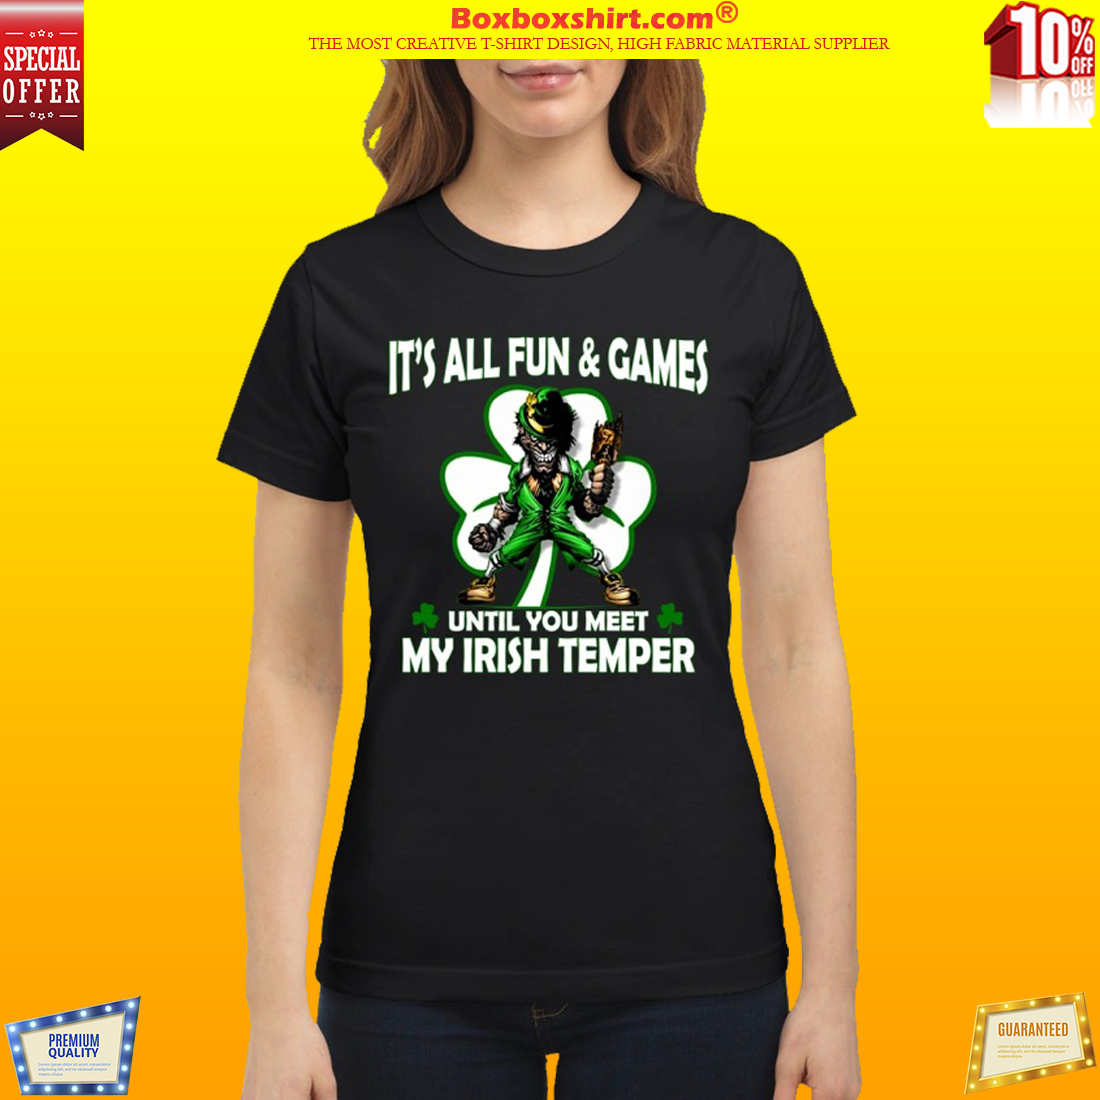 It's all fun and game until you meet my Irish temper classic shirt